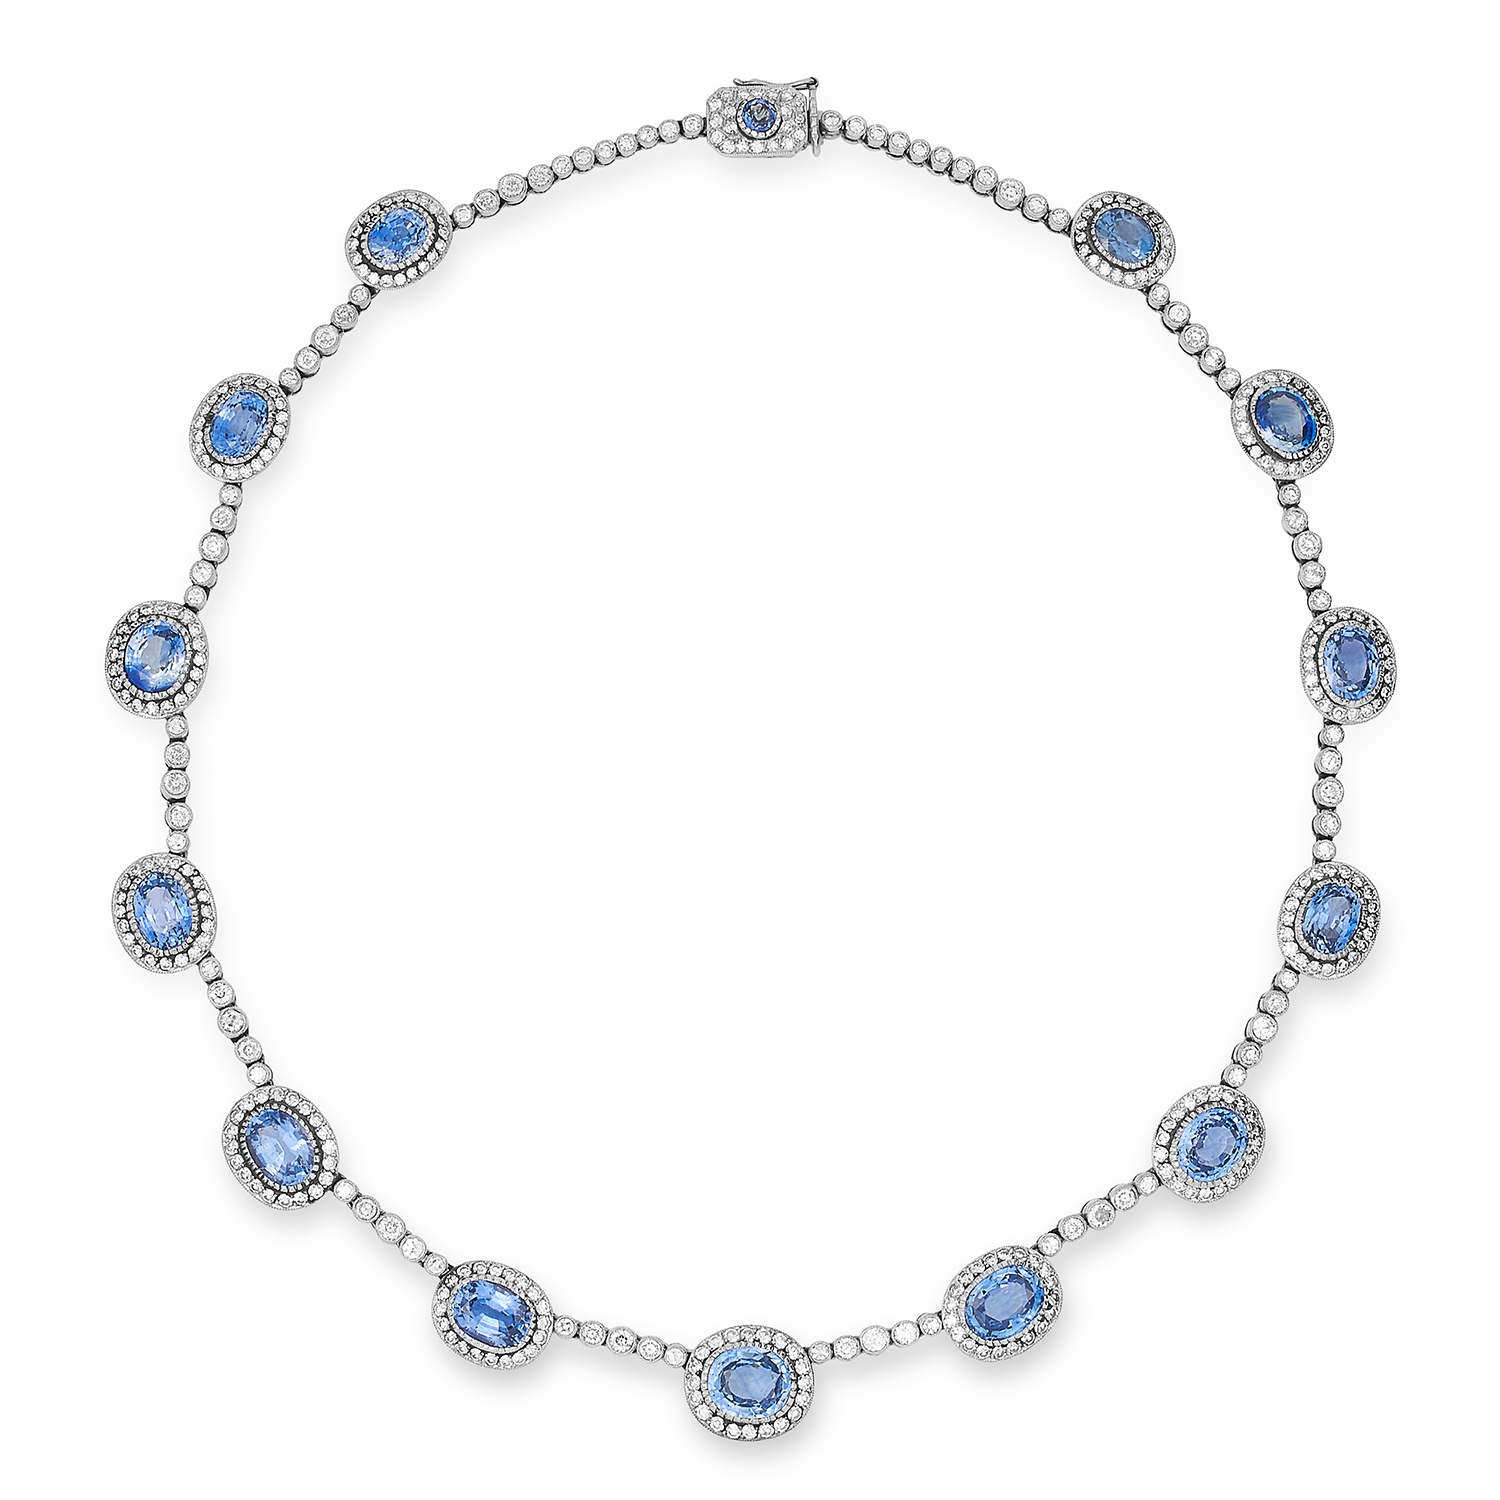 Los 52 - ANTIQUE SAPPHIRE AND DIAMOND NECKLACE, MARKED FOR FABERGE set with oval cut sapphires totalling